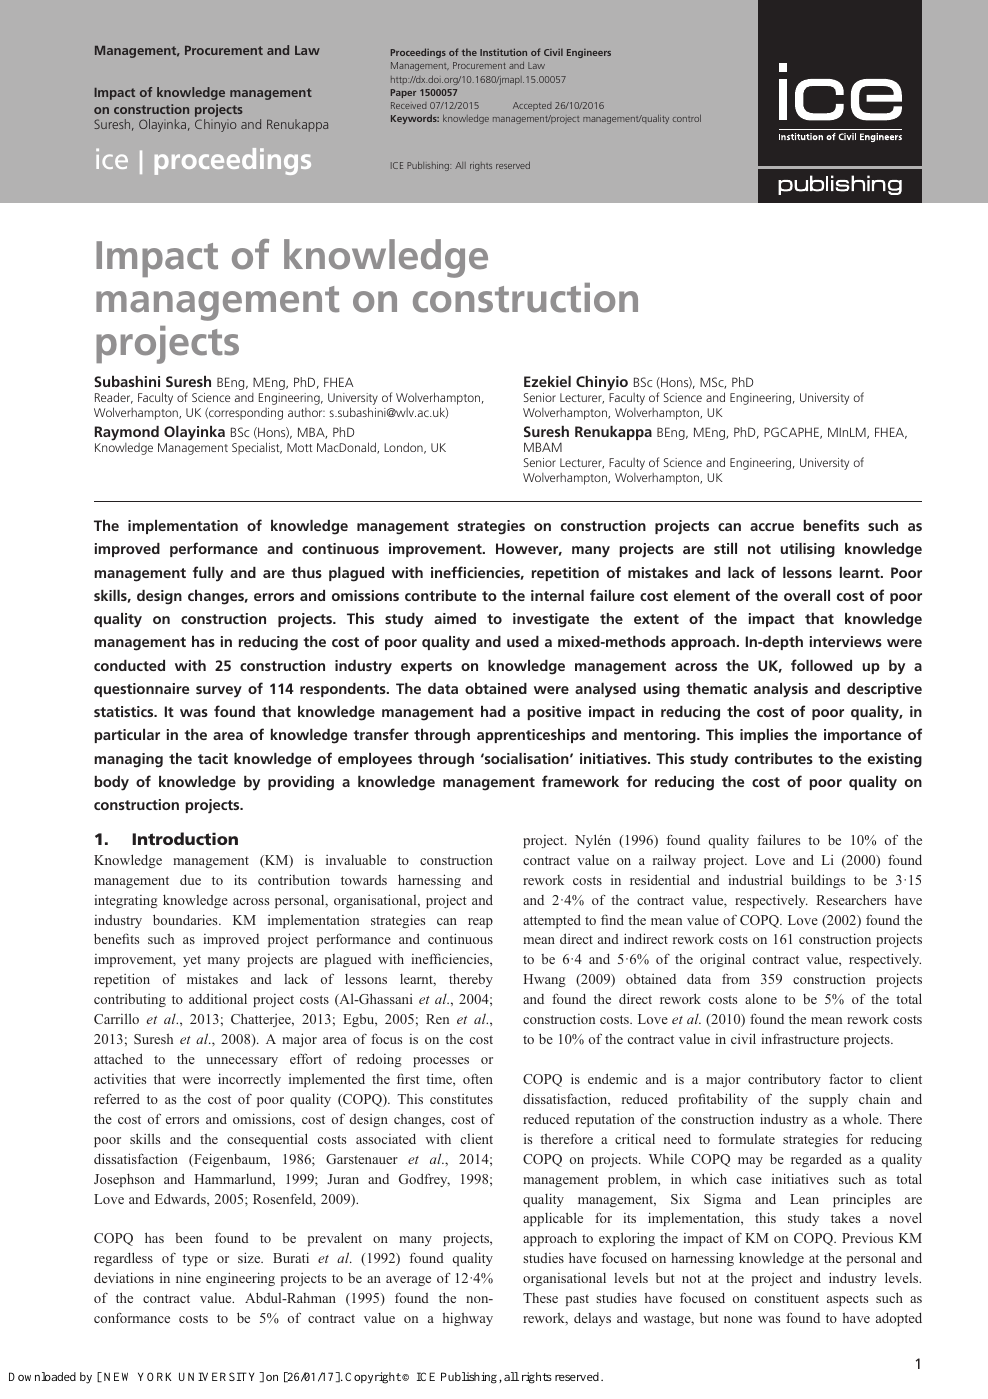 Impact of knowledge management on construction projects